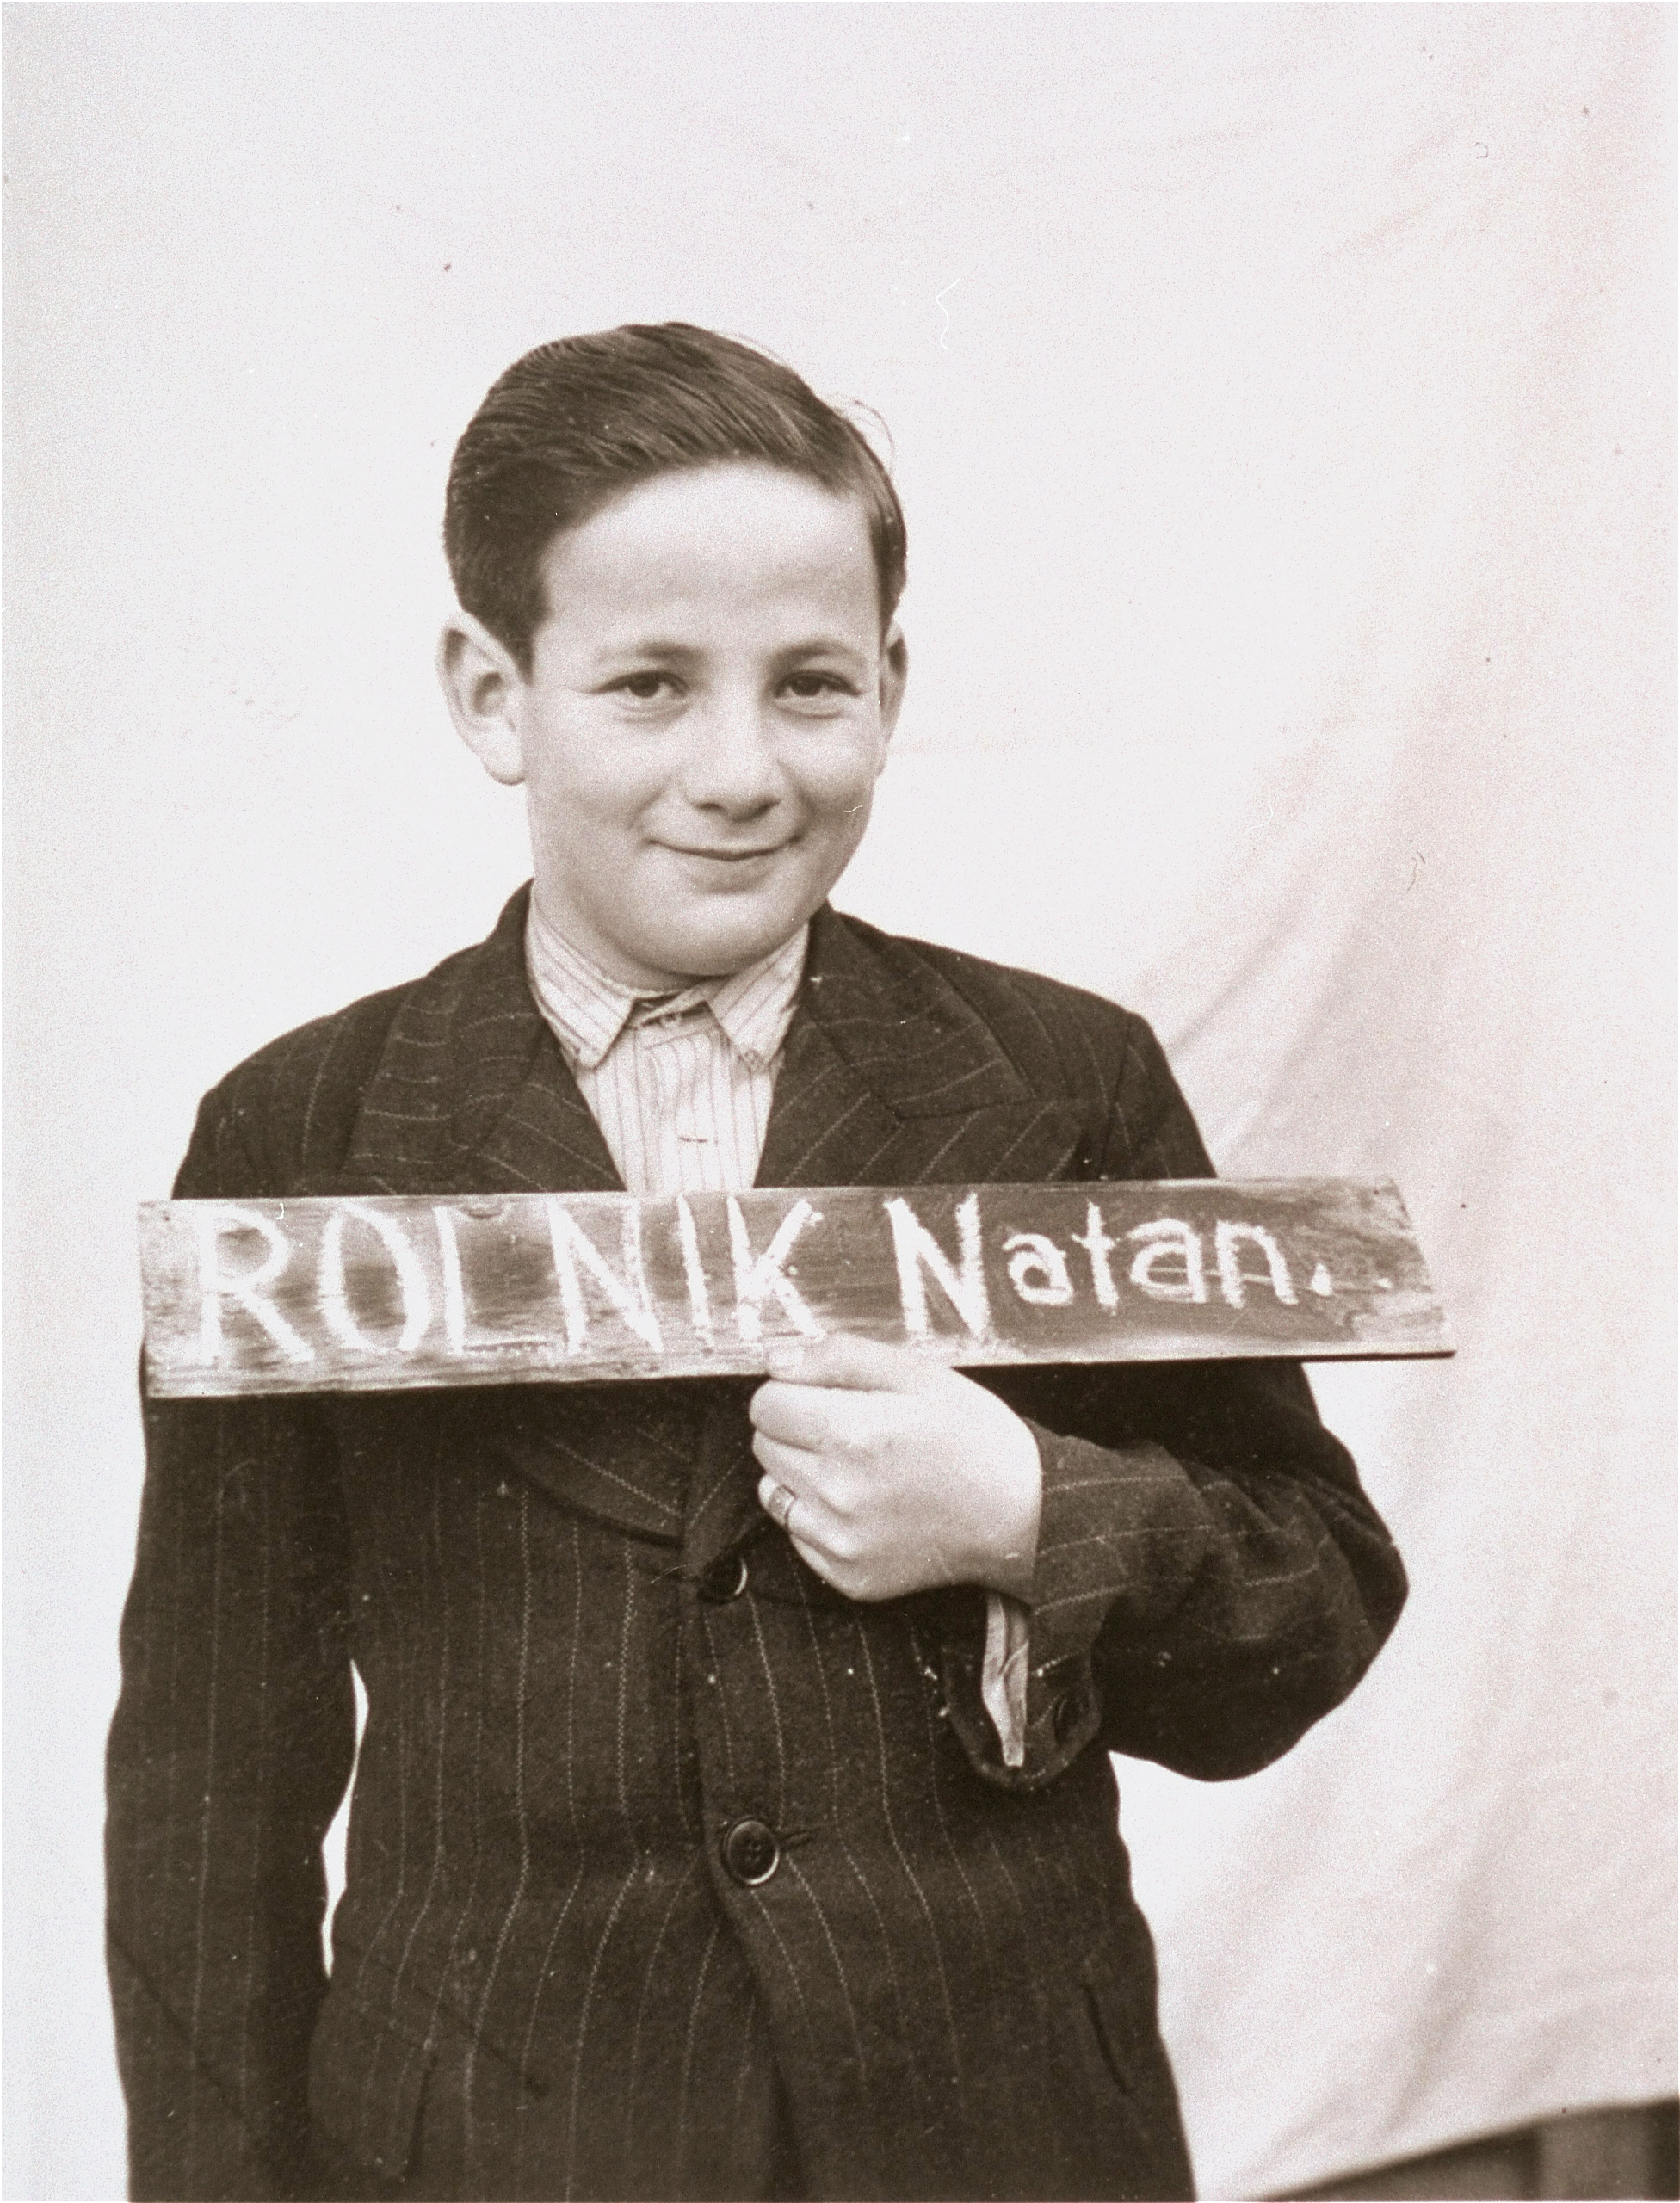 This picture of Natan Rolnik was taken in Kloster Indersdorf in 1945. The image was published in newspapers in hope that someone from his family might be found alive. Picture: USHMM.